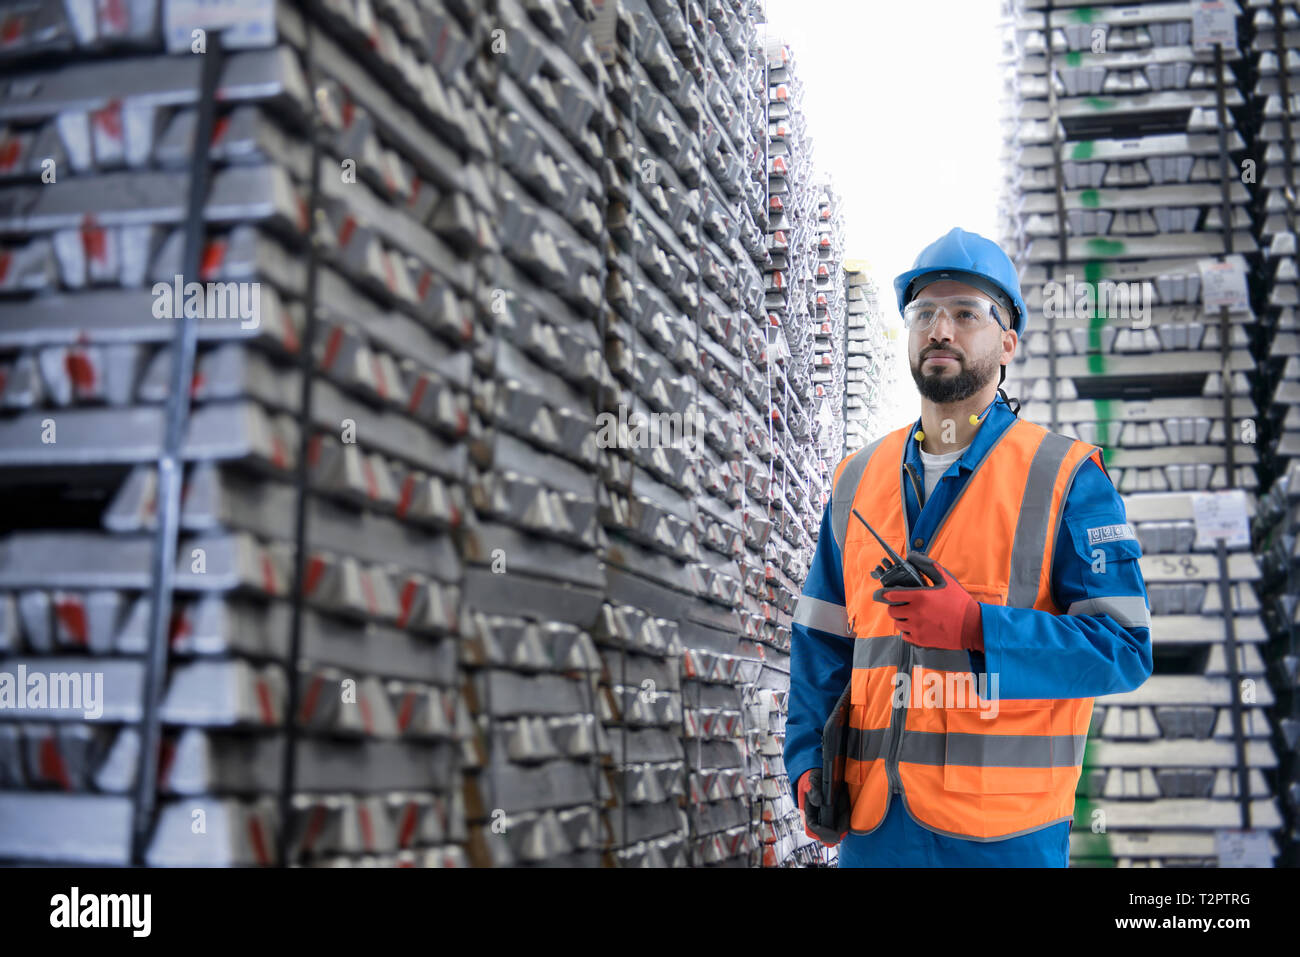 Composite image of worker with ingots of metal - Stock Image